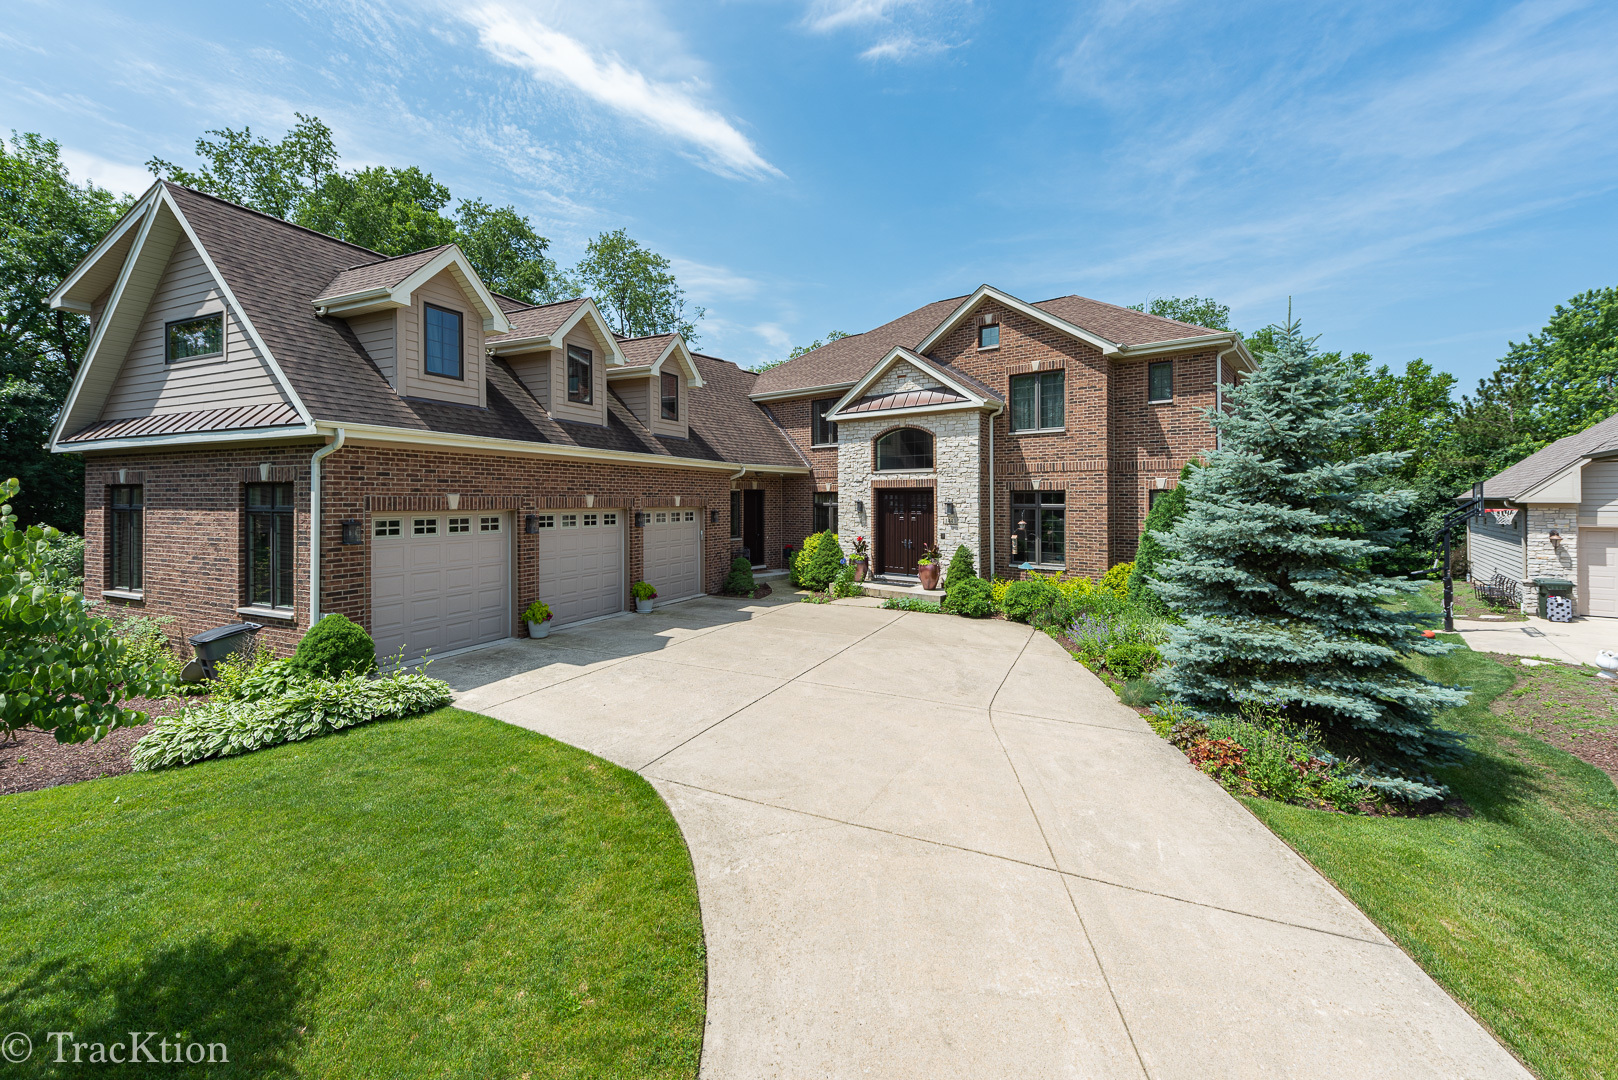 Photo for 1441 Parrish Court, DOWNERS GROVE, IL 60515 (MLS # 10394187)